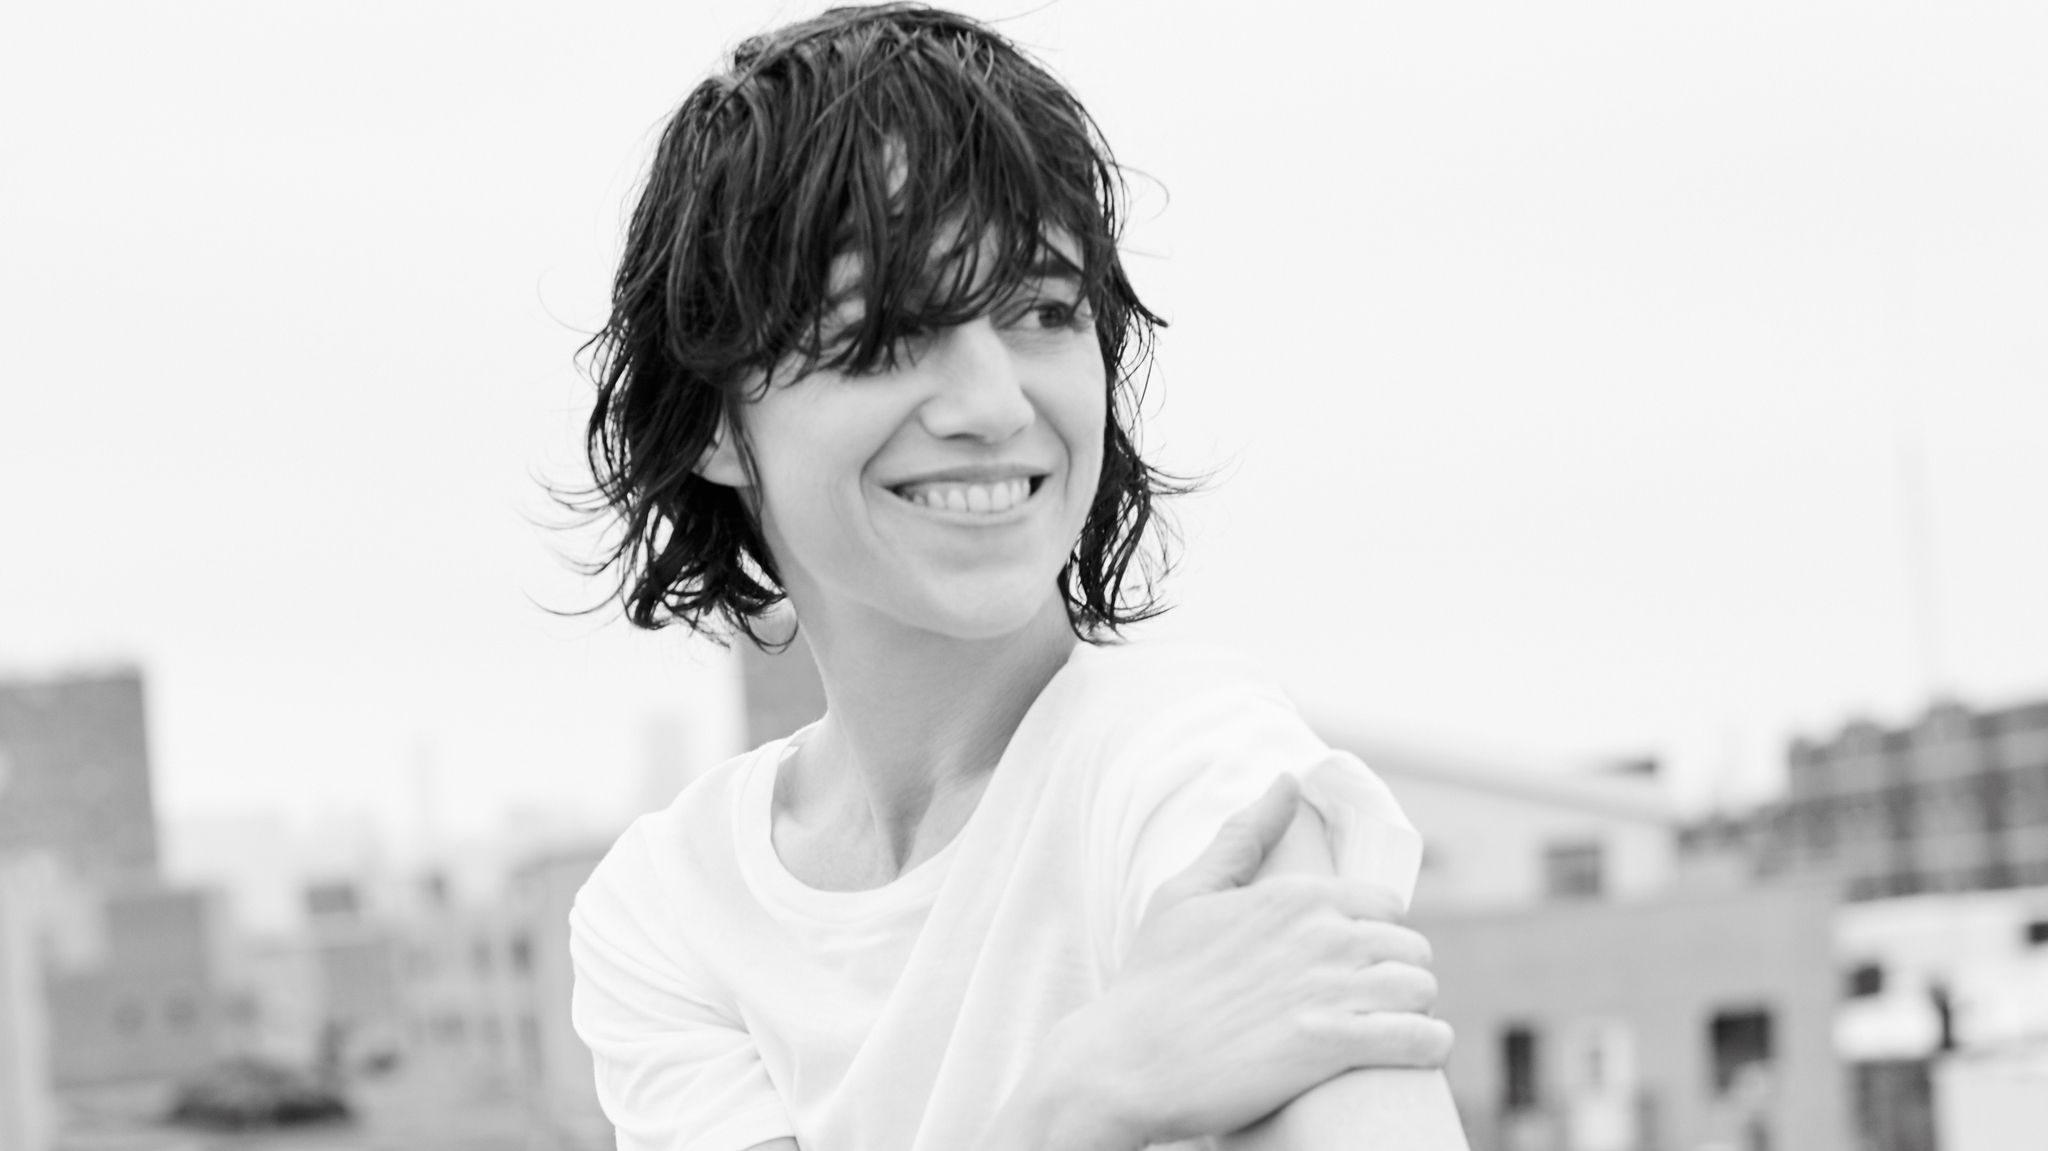 Charlotte Gainsbourg Talks New Album Rest Snowman Movie And NARS Makeup Collection